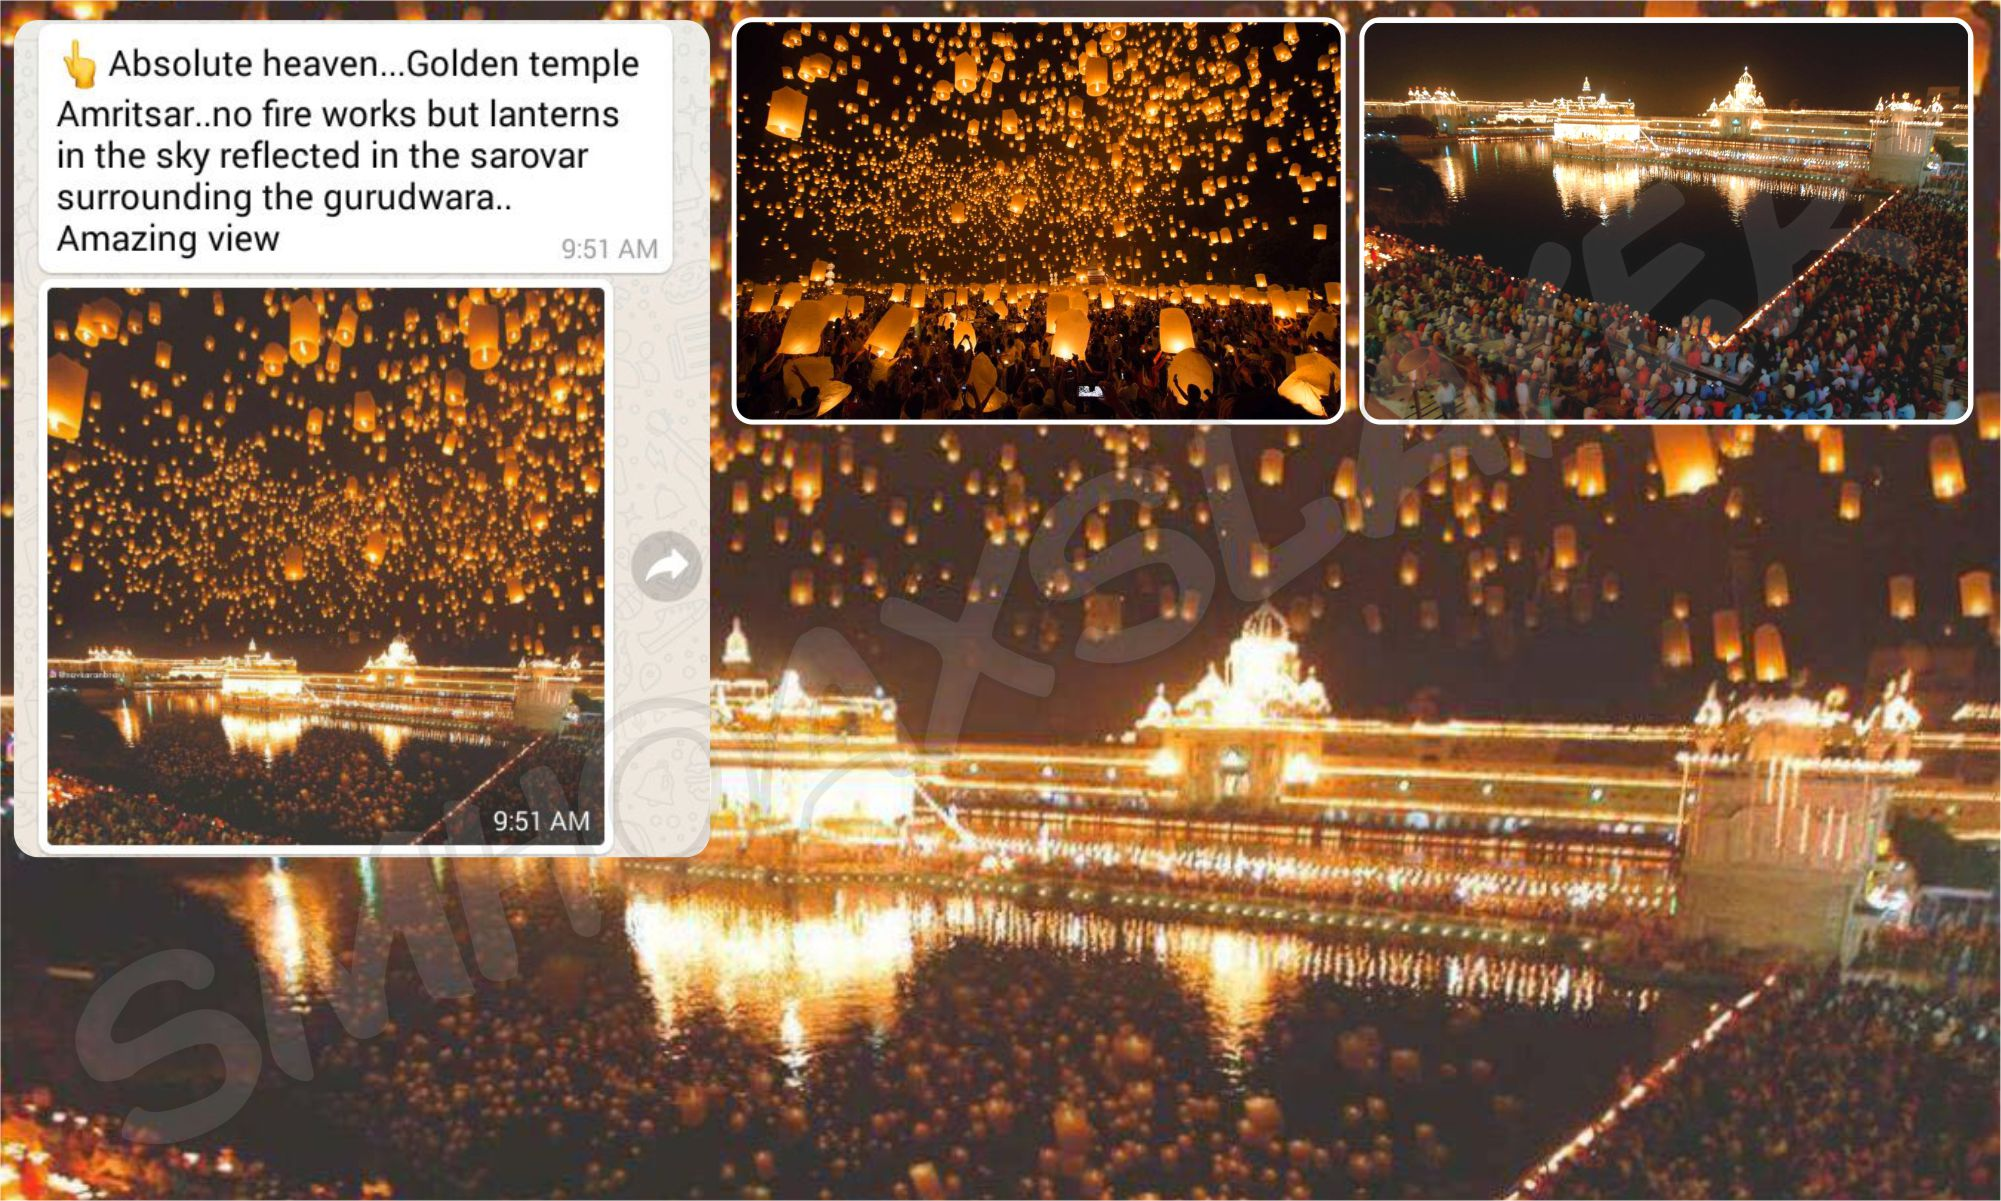 this absolute heaven at golden temple is achievedphotoshop